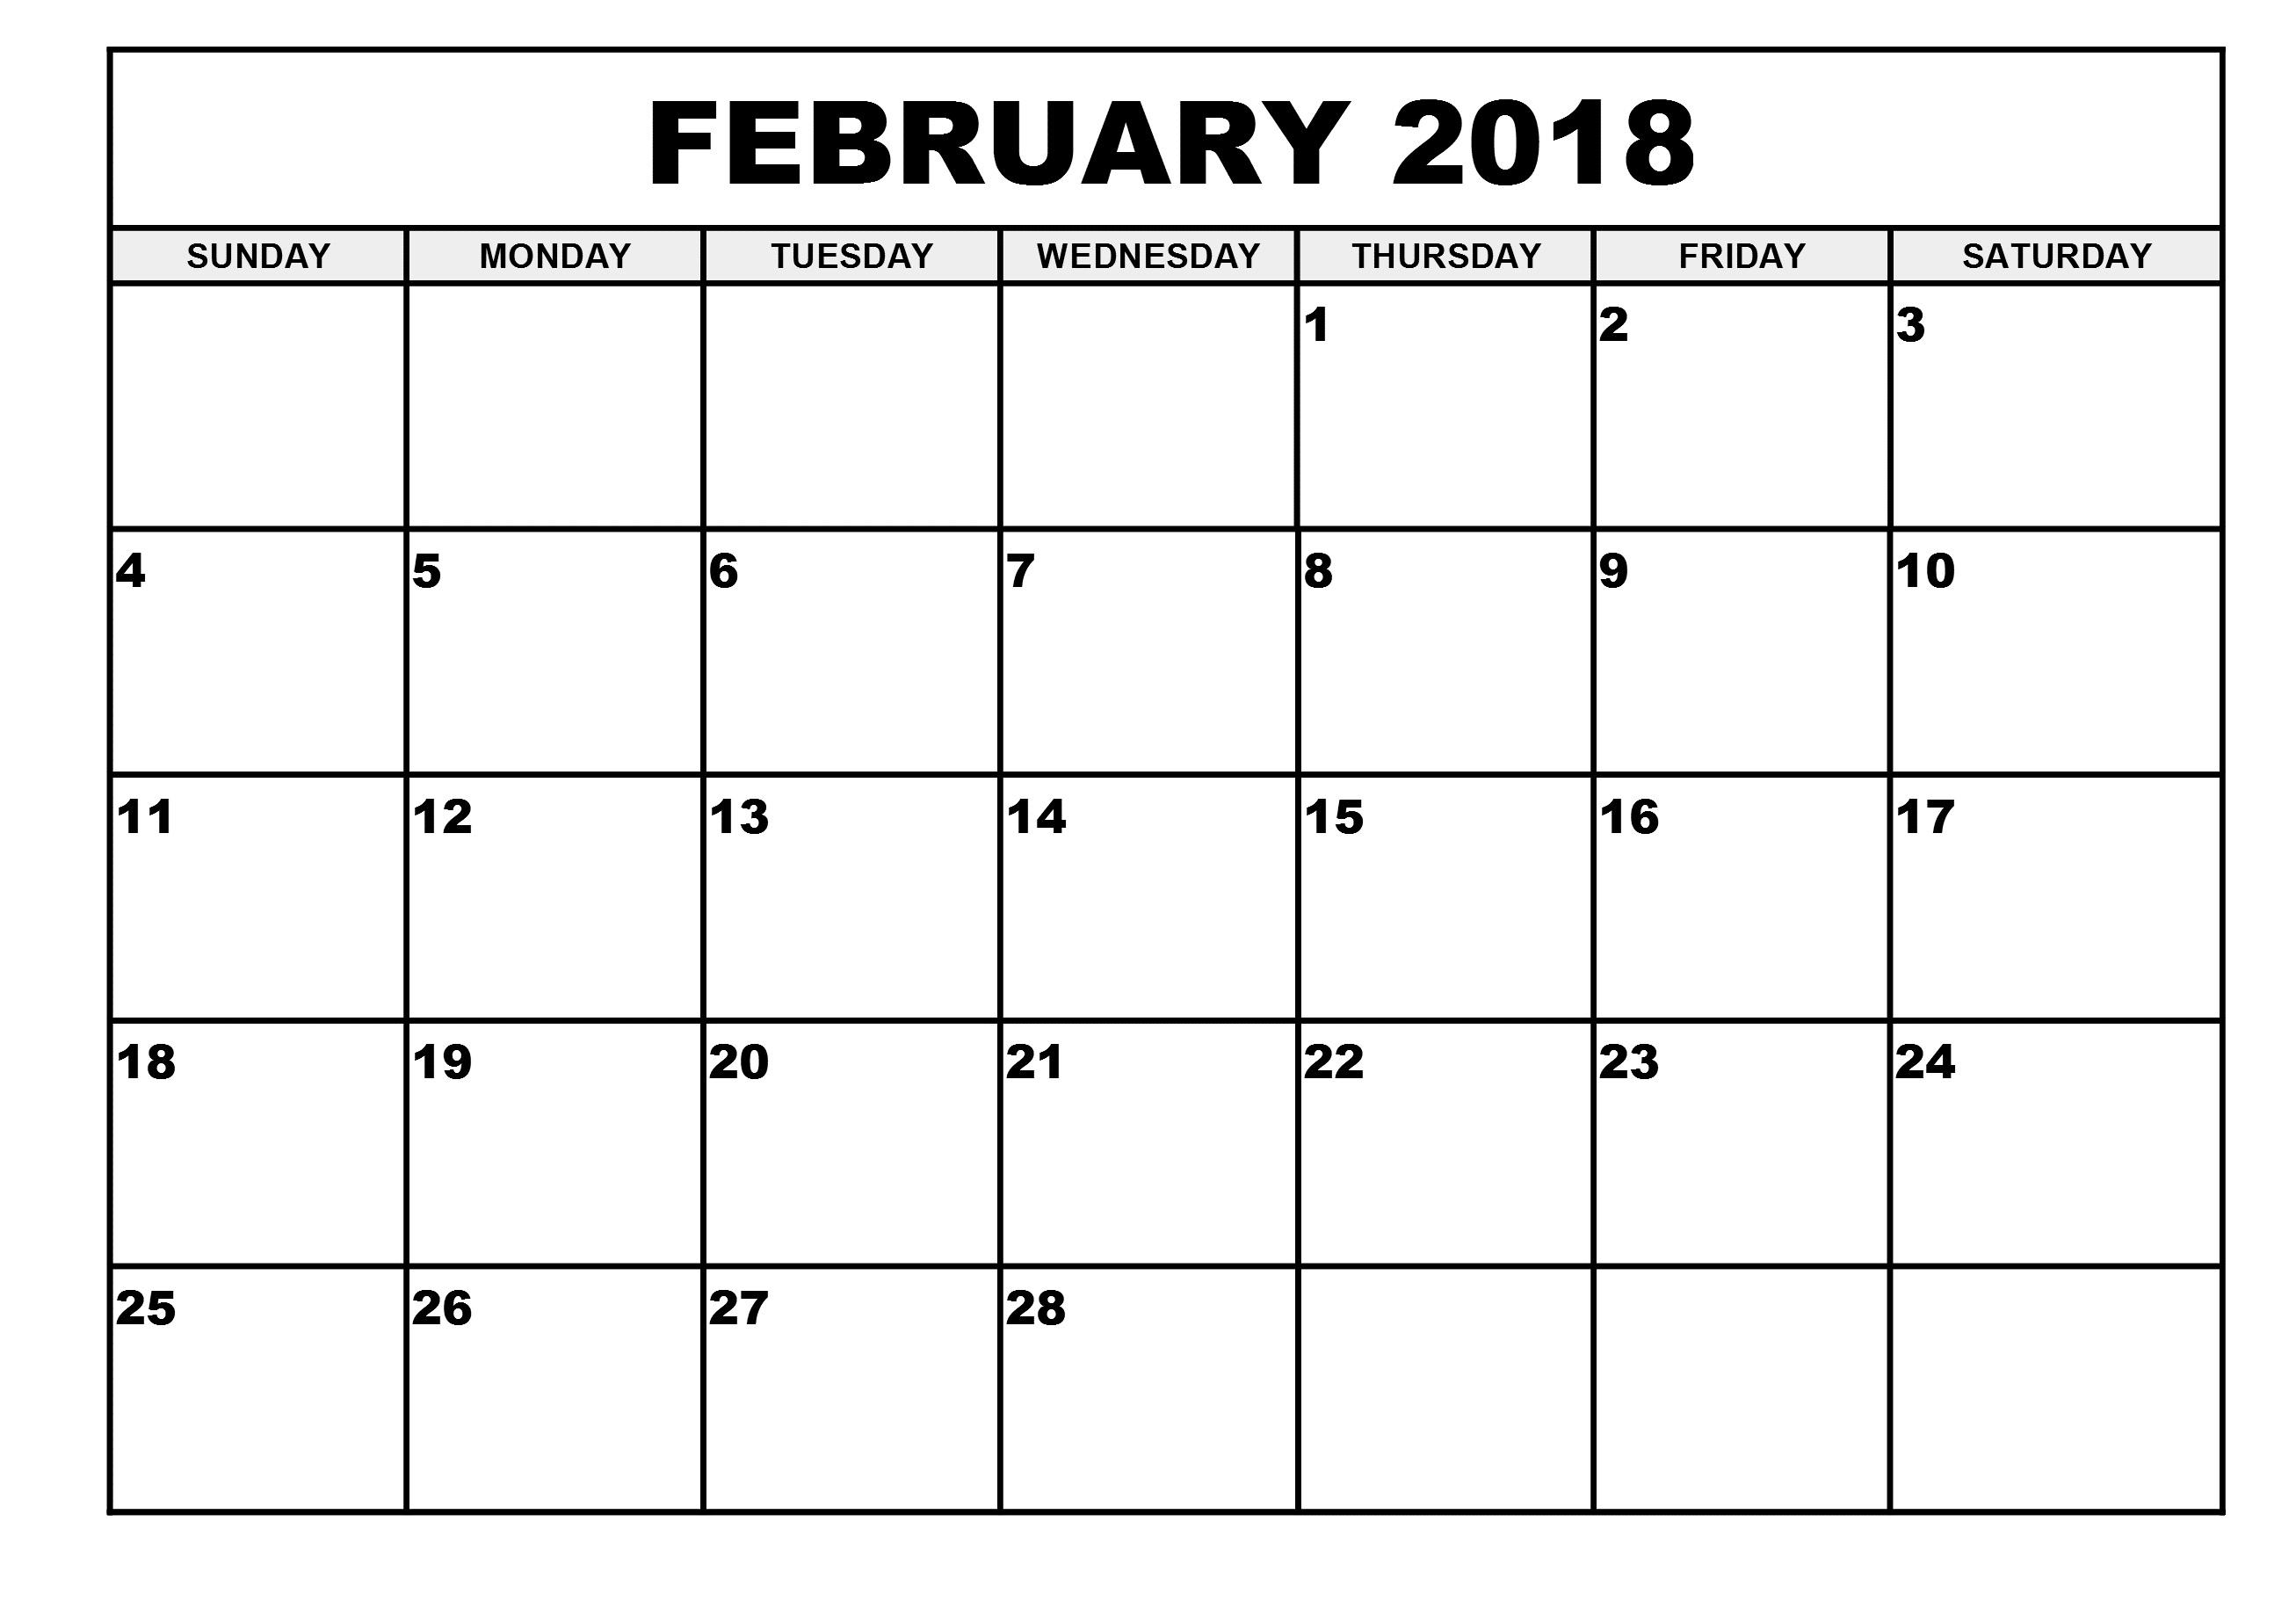 February 2018 Calendar Printable Template PDF with Holidays USA UK